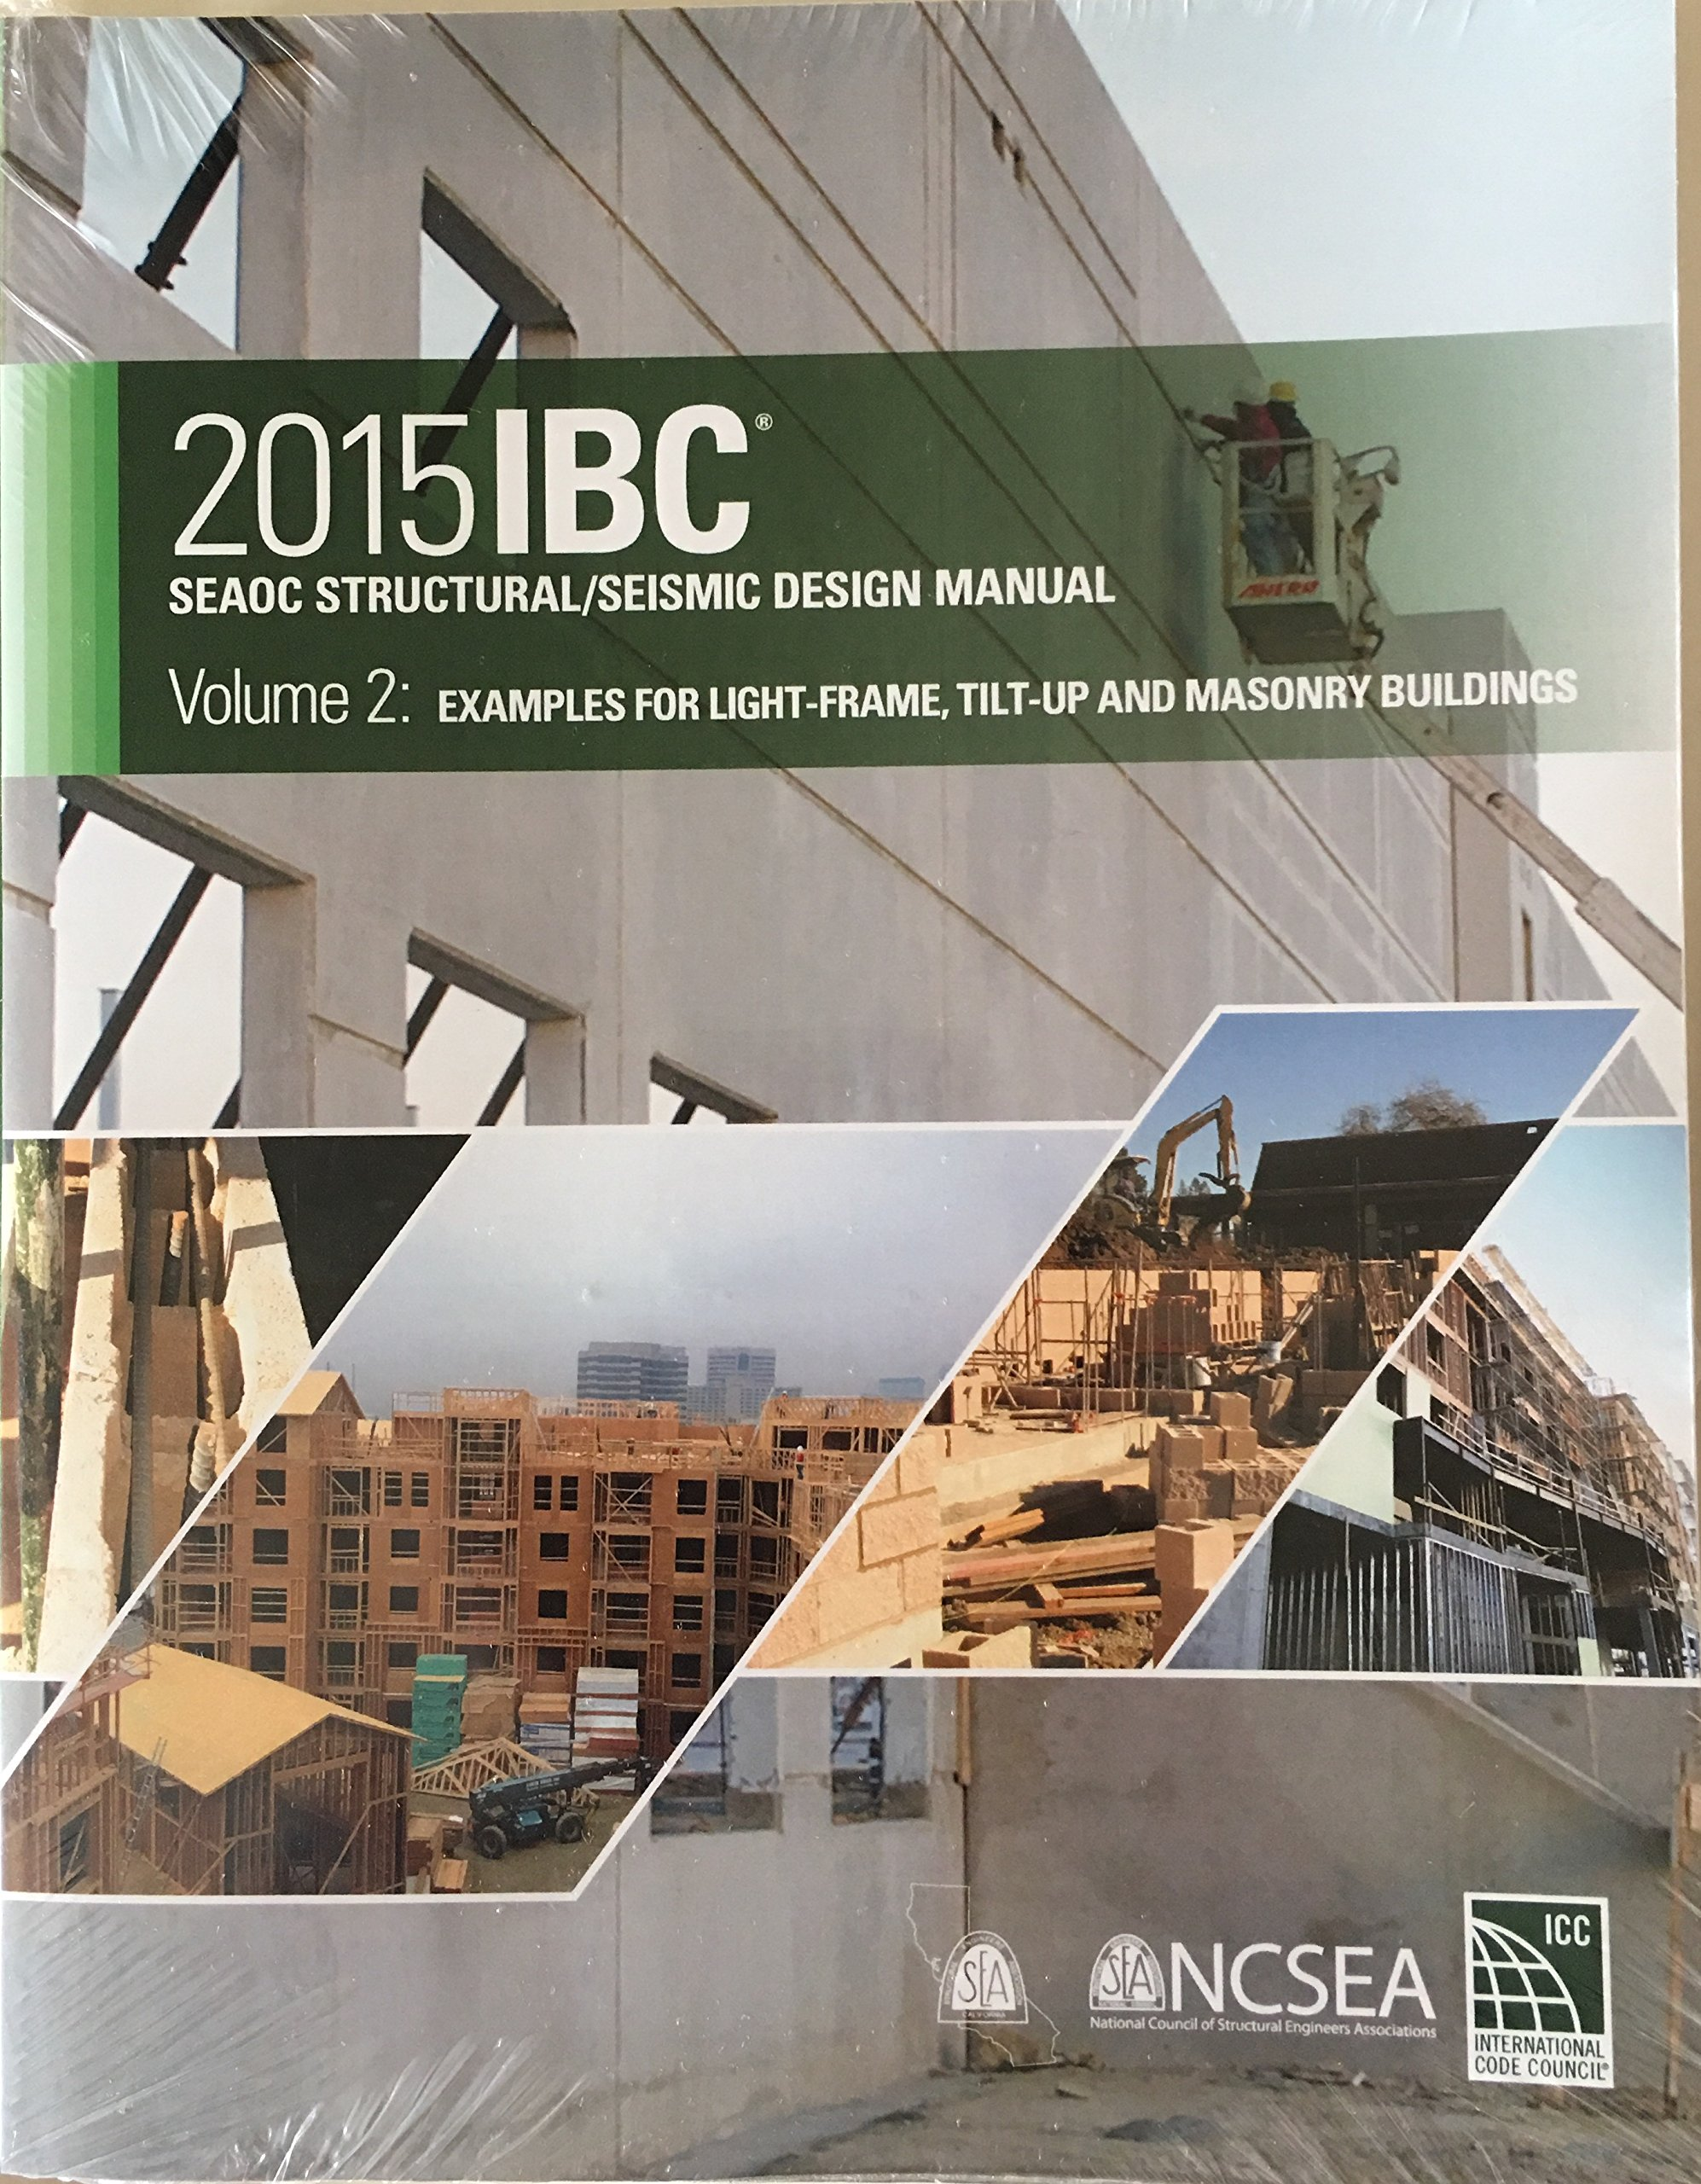 2015 IBC SEAOC Structural/Seismic Design Manual Volume 2: Examples for  Light-Frame, Tilt-Up and Masonry Buildings: 9781609836504: Amazon.com: Books